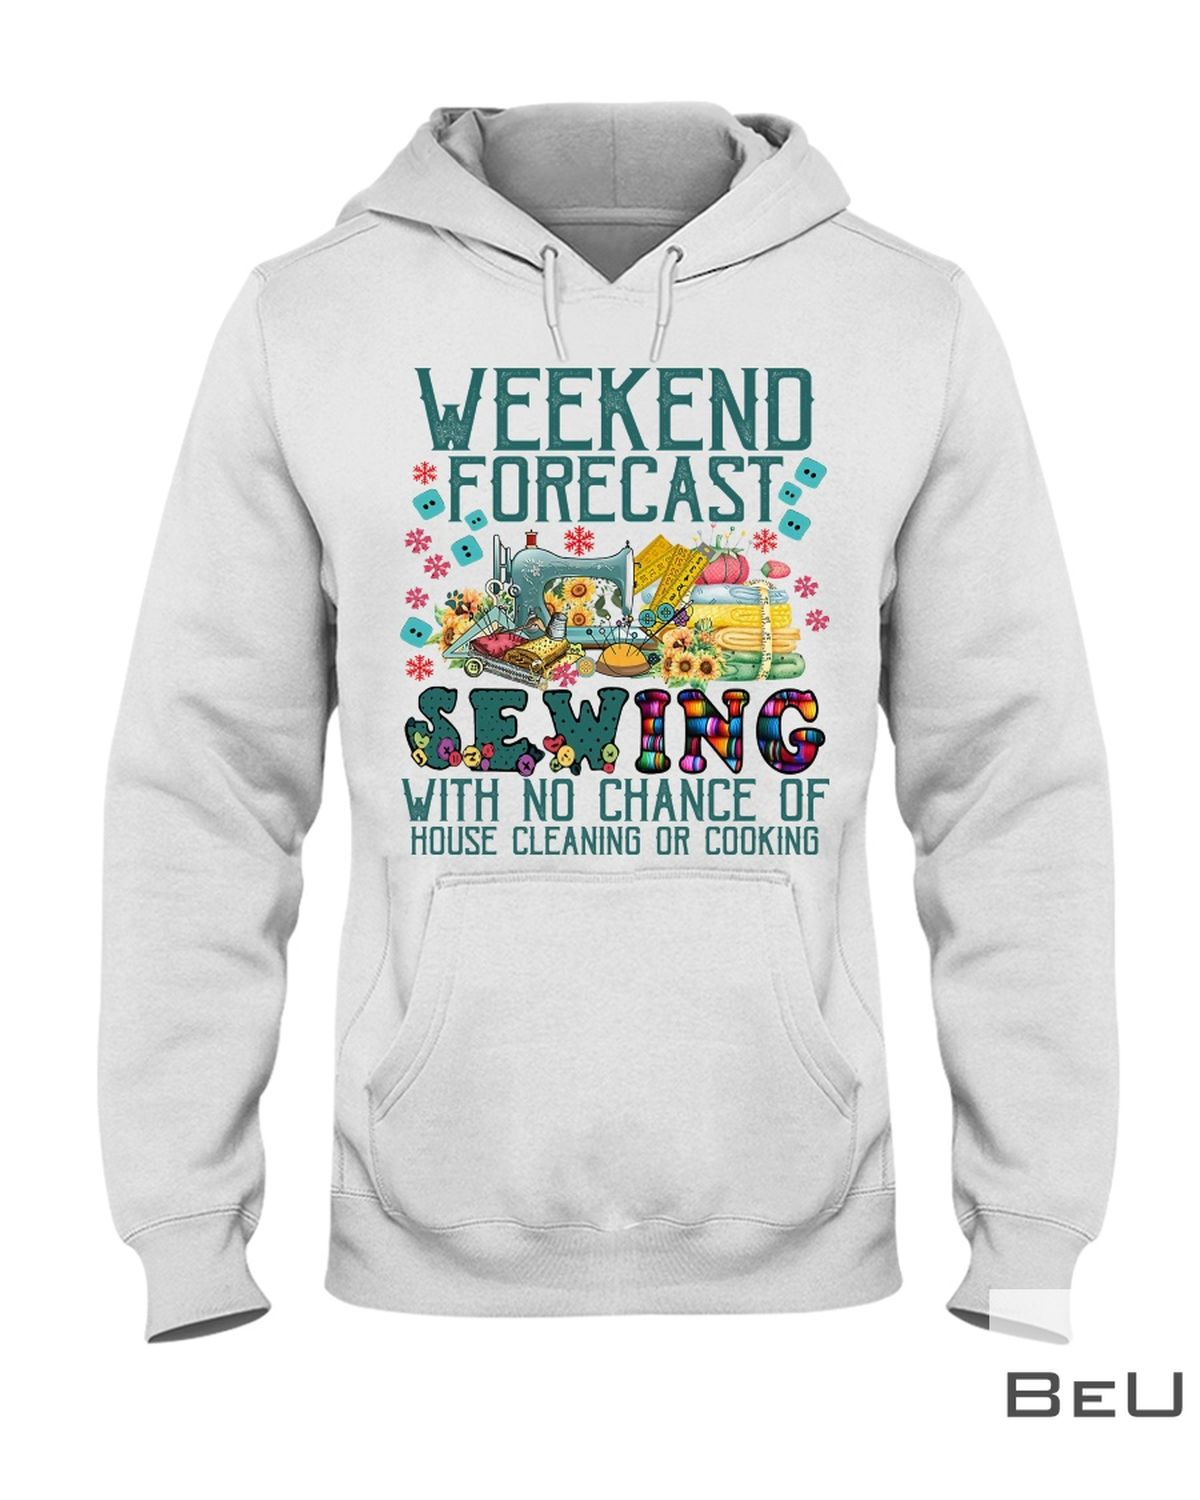 Weekend Forecast Sewing With No Chance Of House Cleaning Or Cooking Shirtc